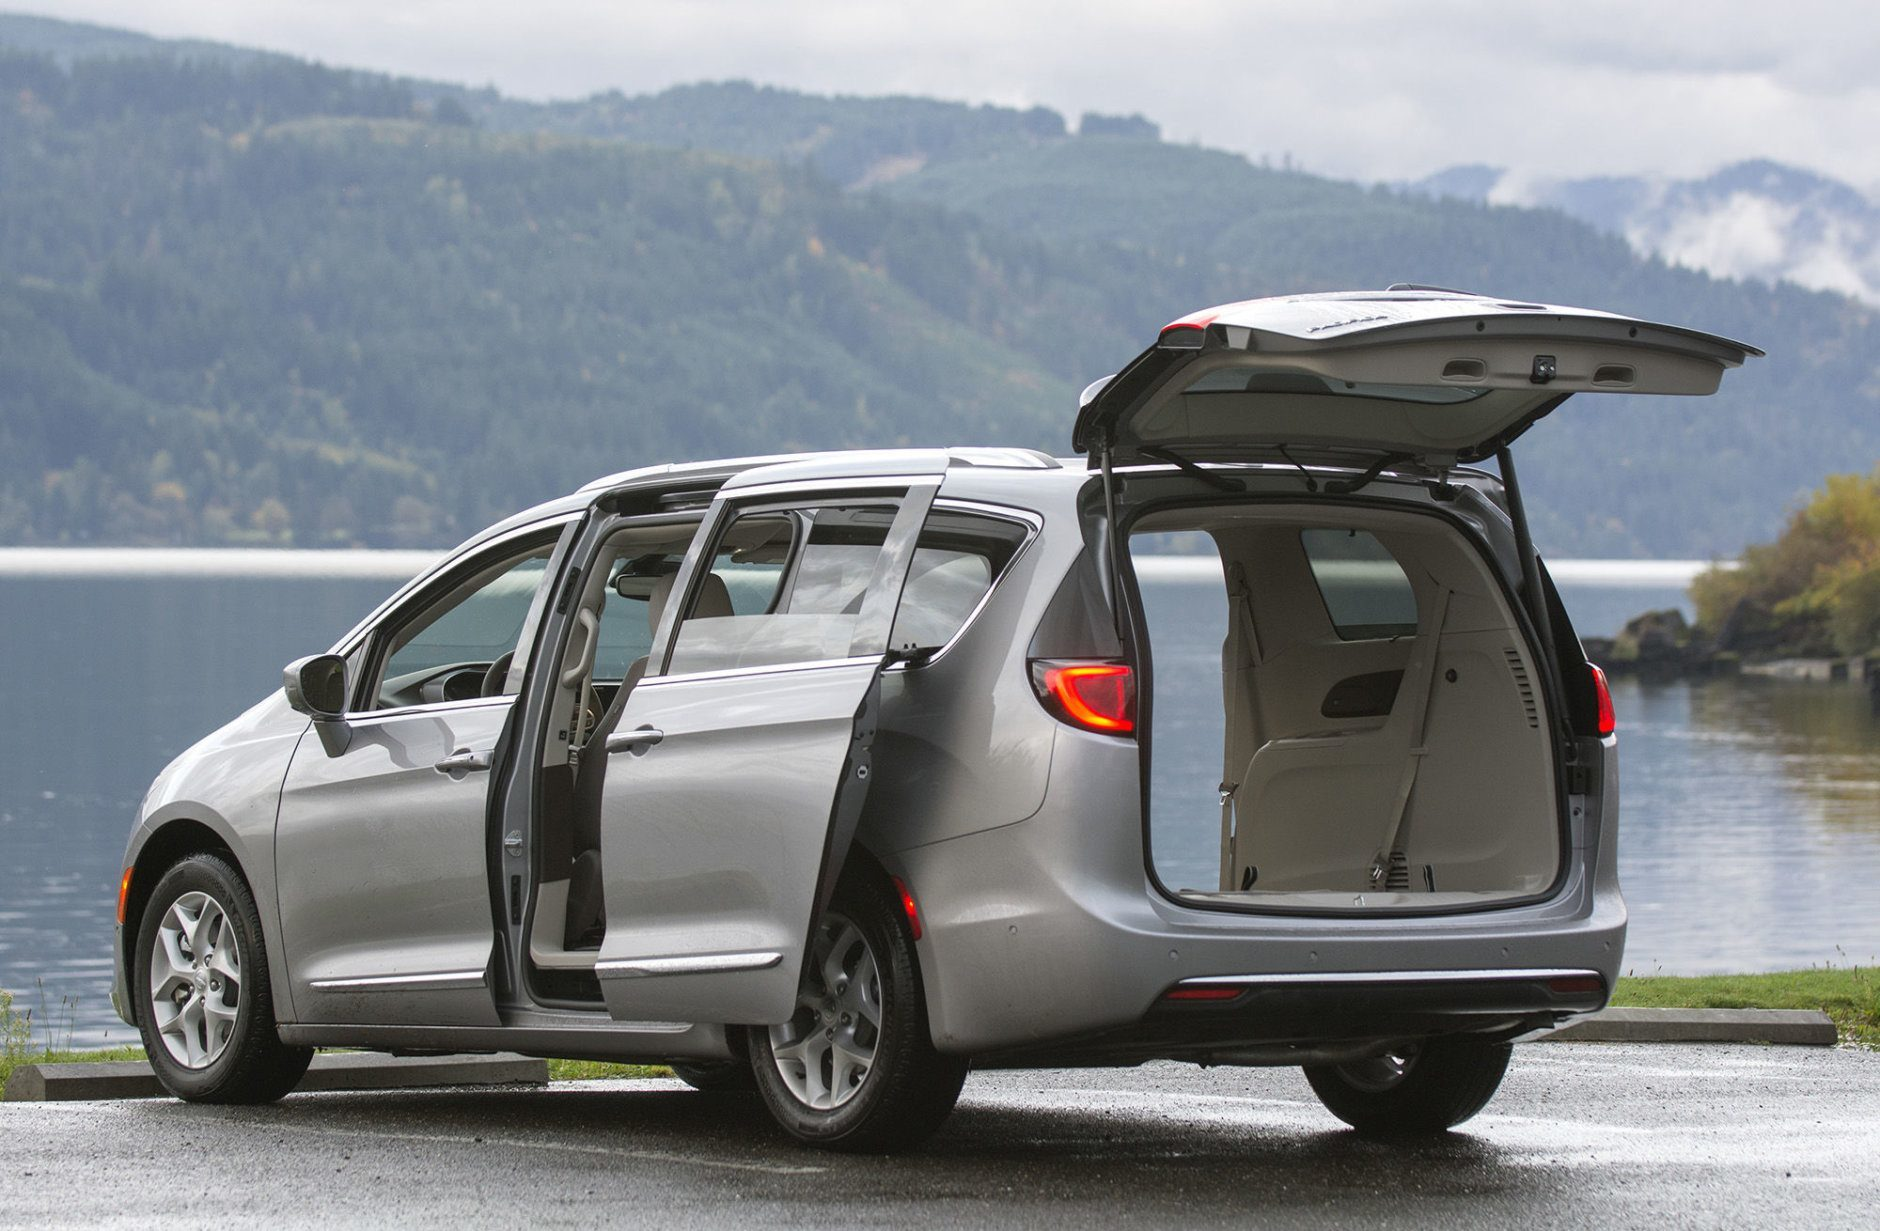 2019 Chrysler Pacifica Purchase Deal: 0% financing for 60 months (U.S. News & World Report/John M. Vincent)